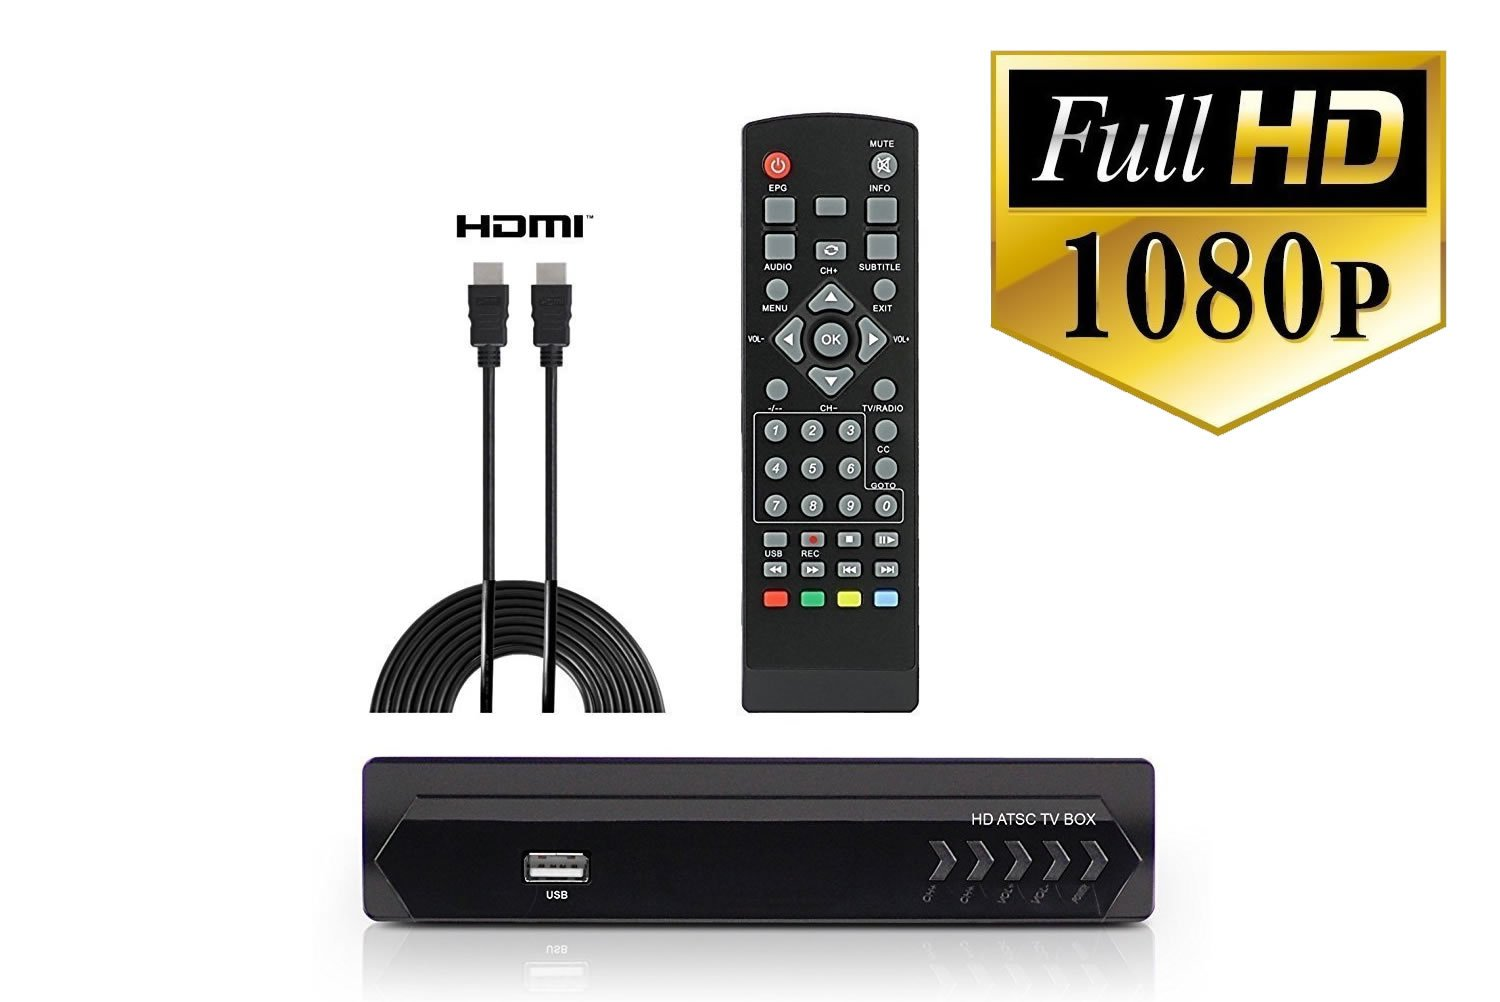 Digital Converter Box + HDMI Cable for Watching & Recording Full HD Digital Channels for FREE - Instant & Scheduled Recording, 1080P, HDMI Output, 7 Day Program Guide & LCD Screen